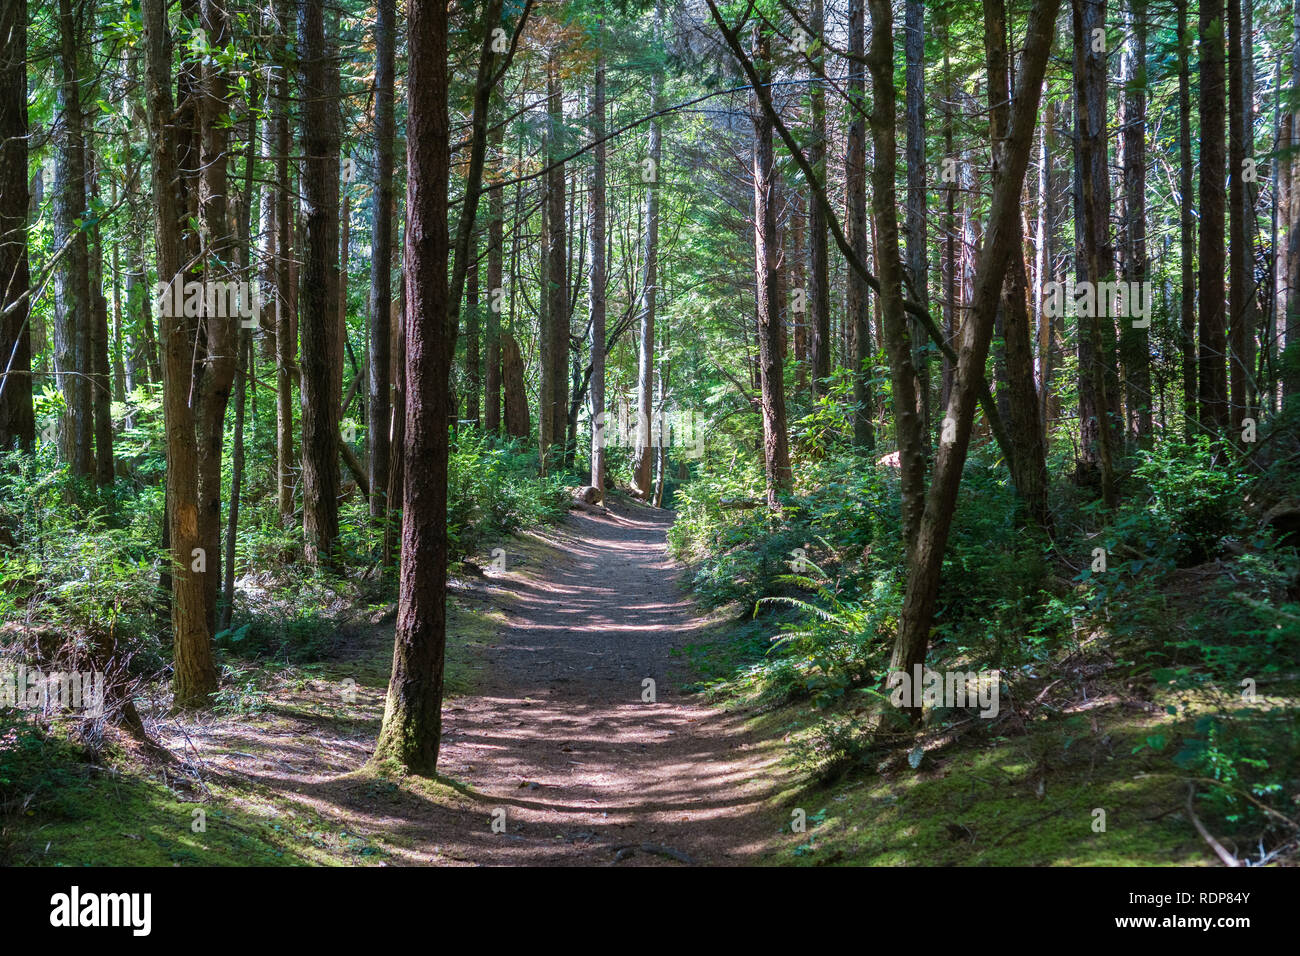 Hiking path through the forests of South Slough National Estuarine Research Reserve, Coos Bay, Oregon - Stock Image